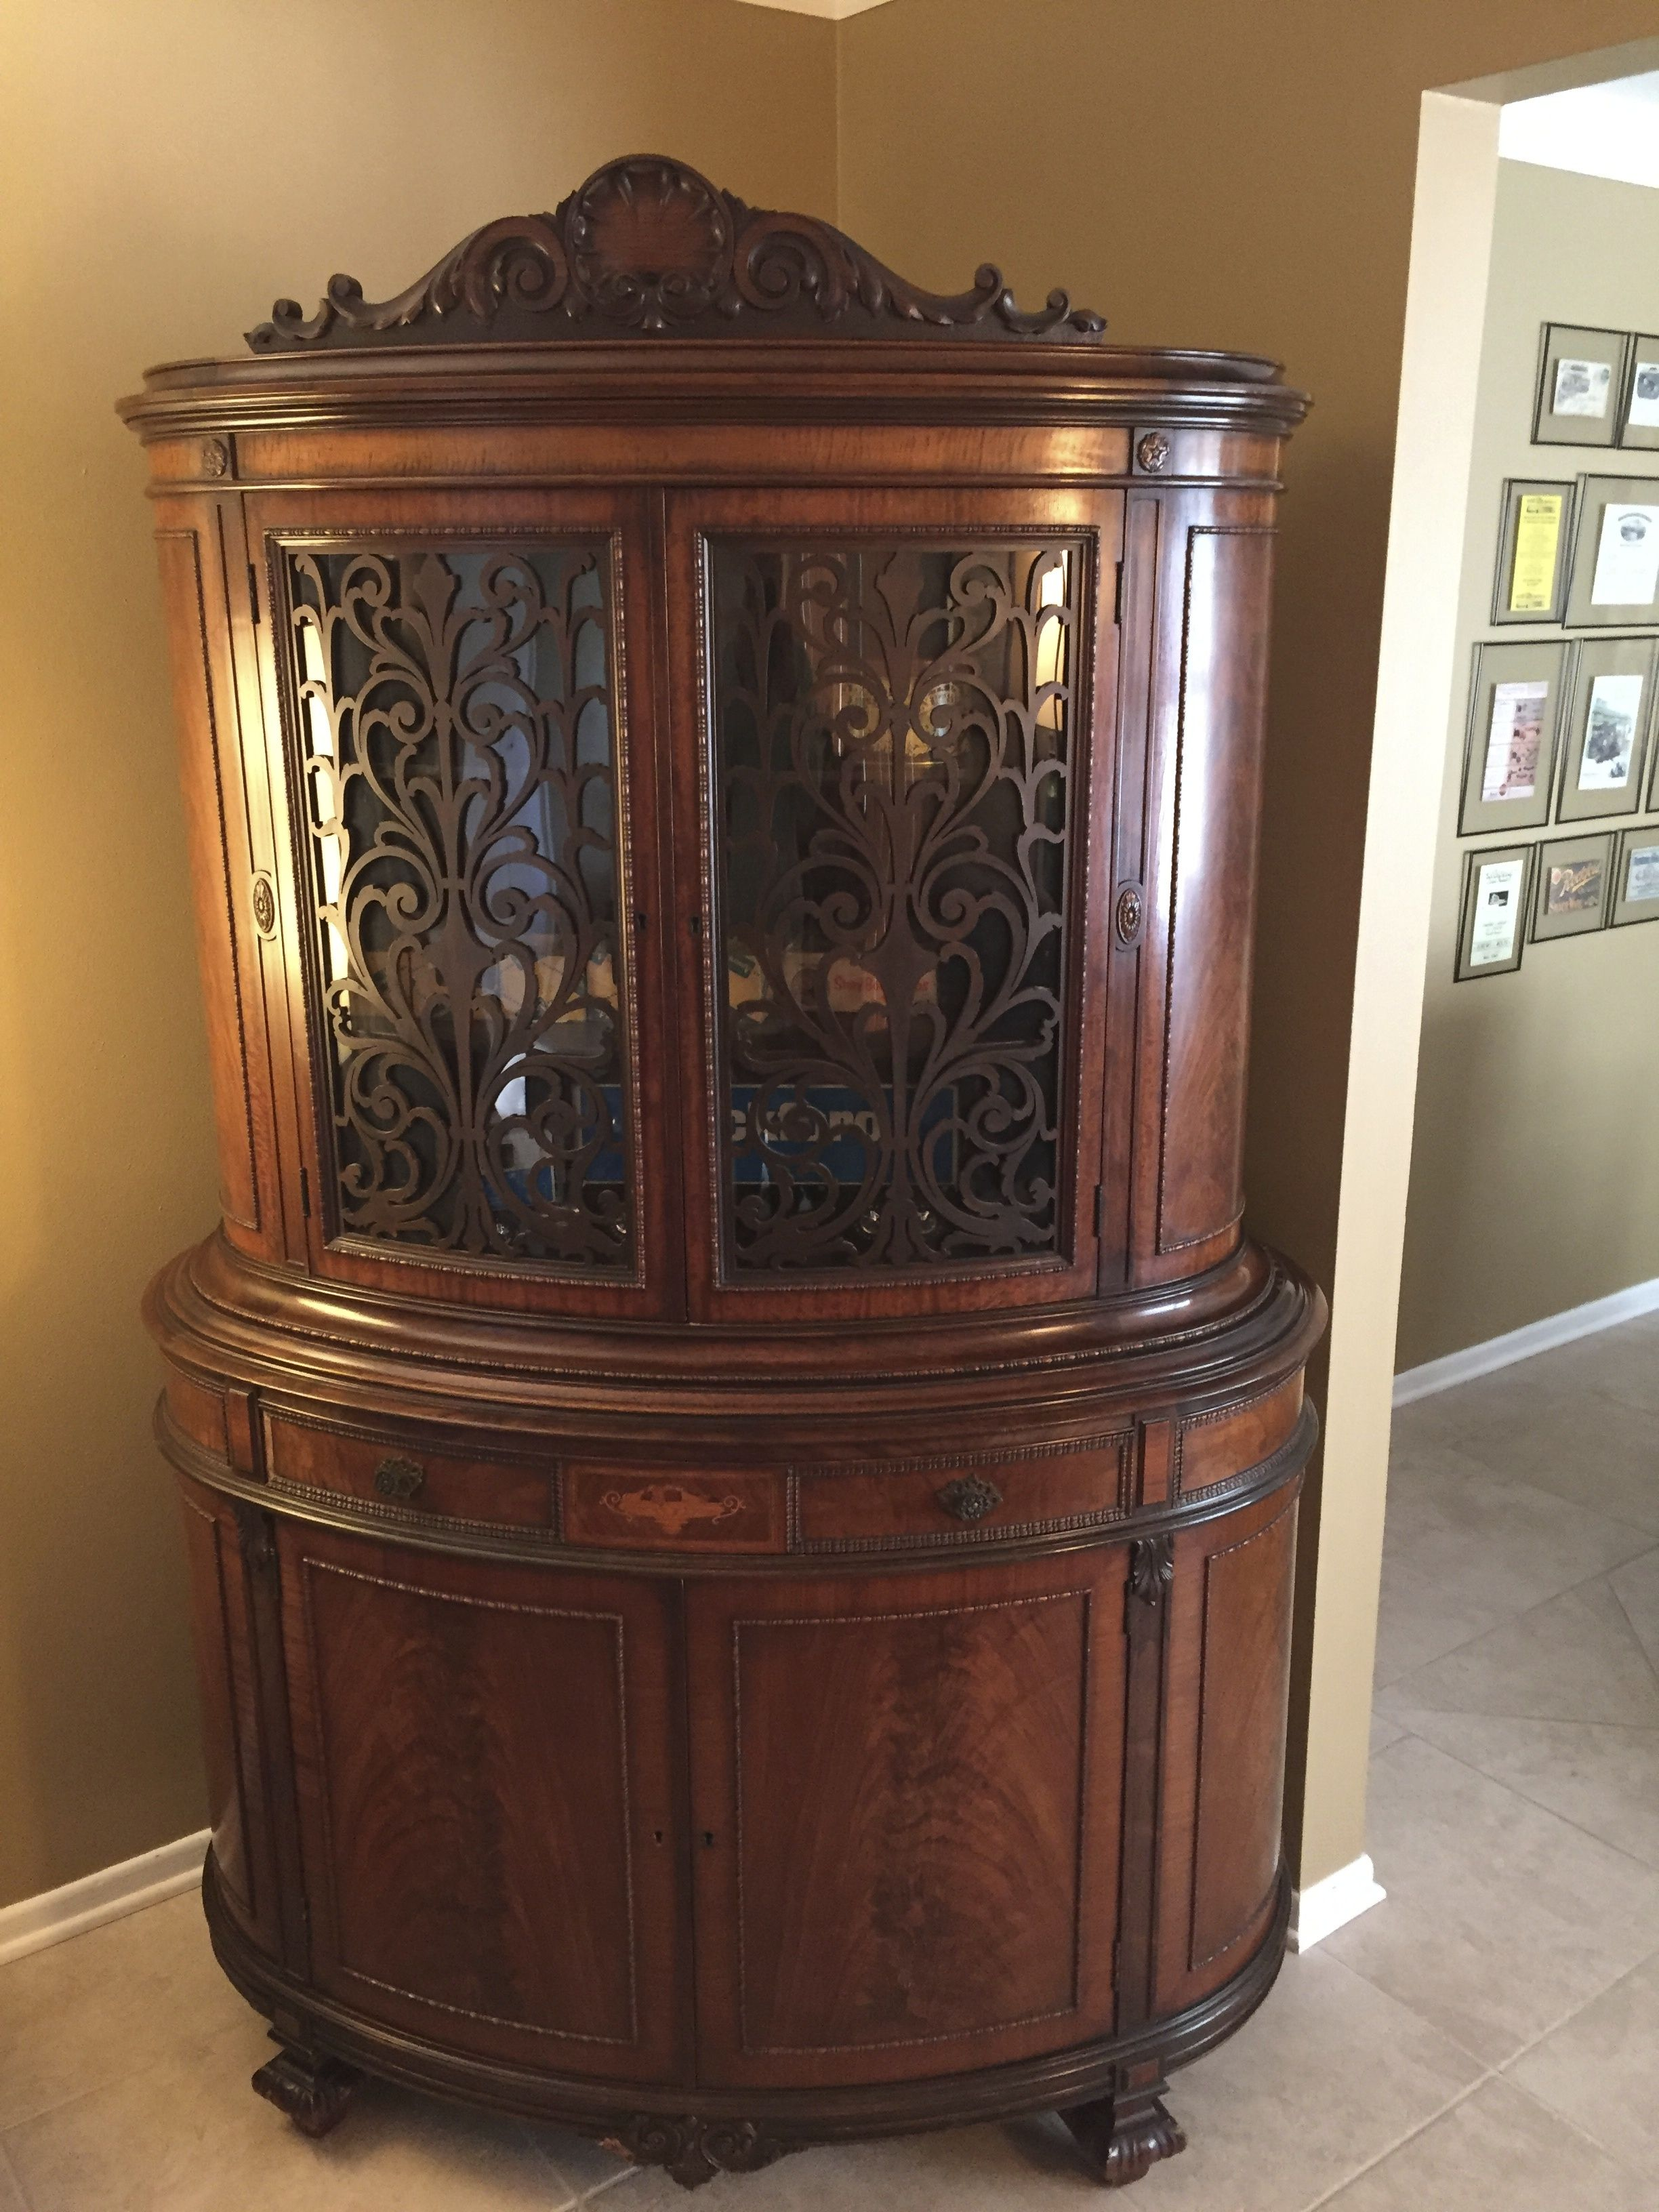 Mechanics Furniture Company Rockford Il Antique Hutch This Hutch Is Oval Shaped And Was A